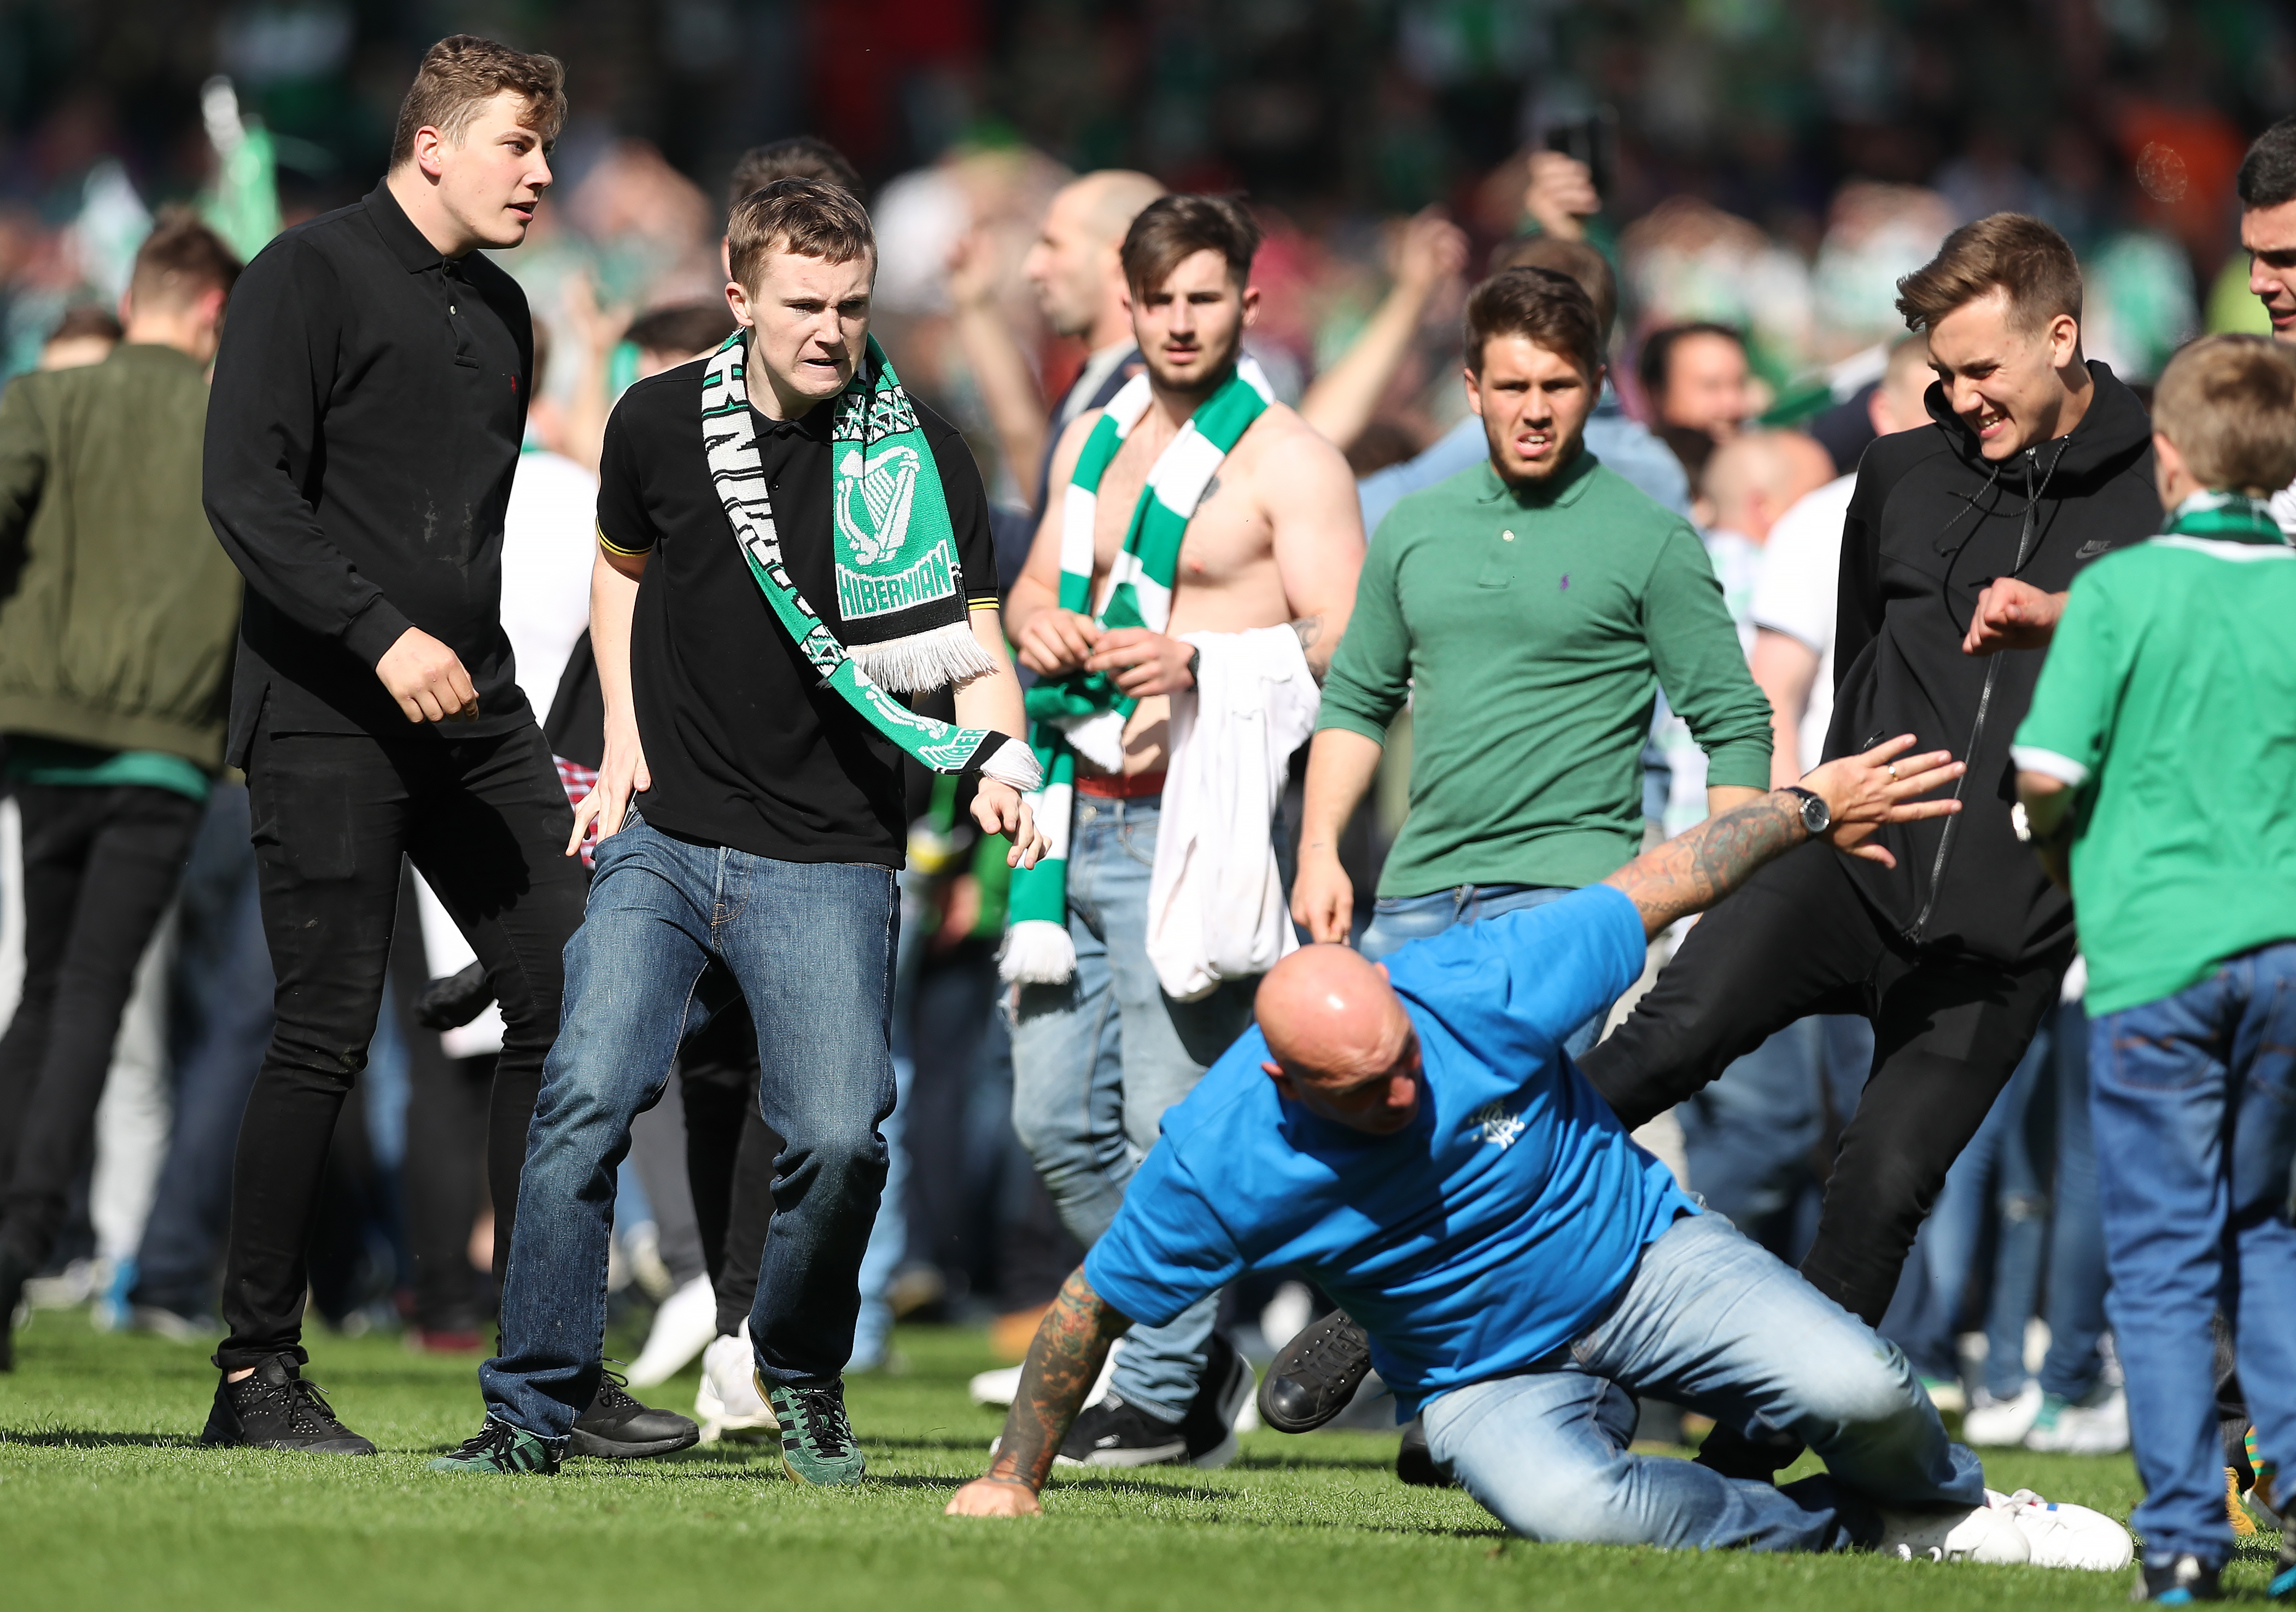 Hibernian and Rangers supporters clash on Hampden Park pitch following the 2016 Scottish Cup Final